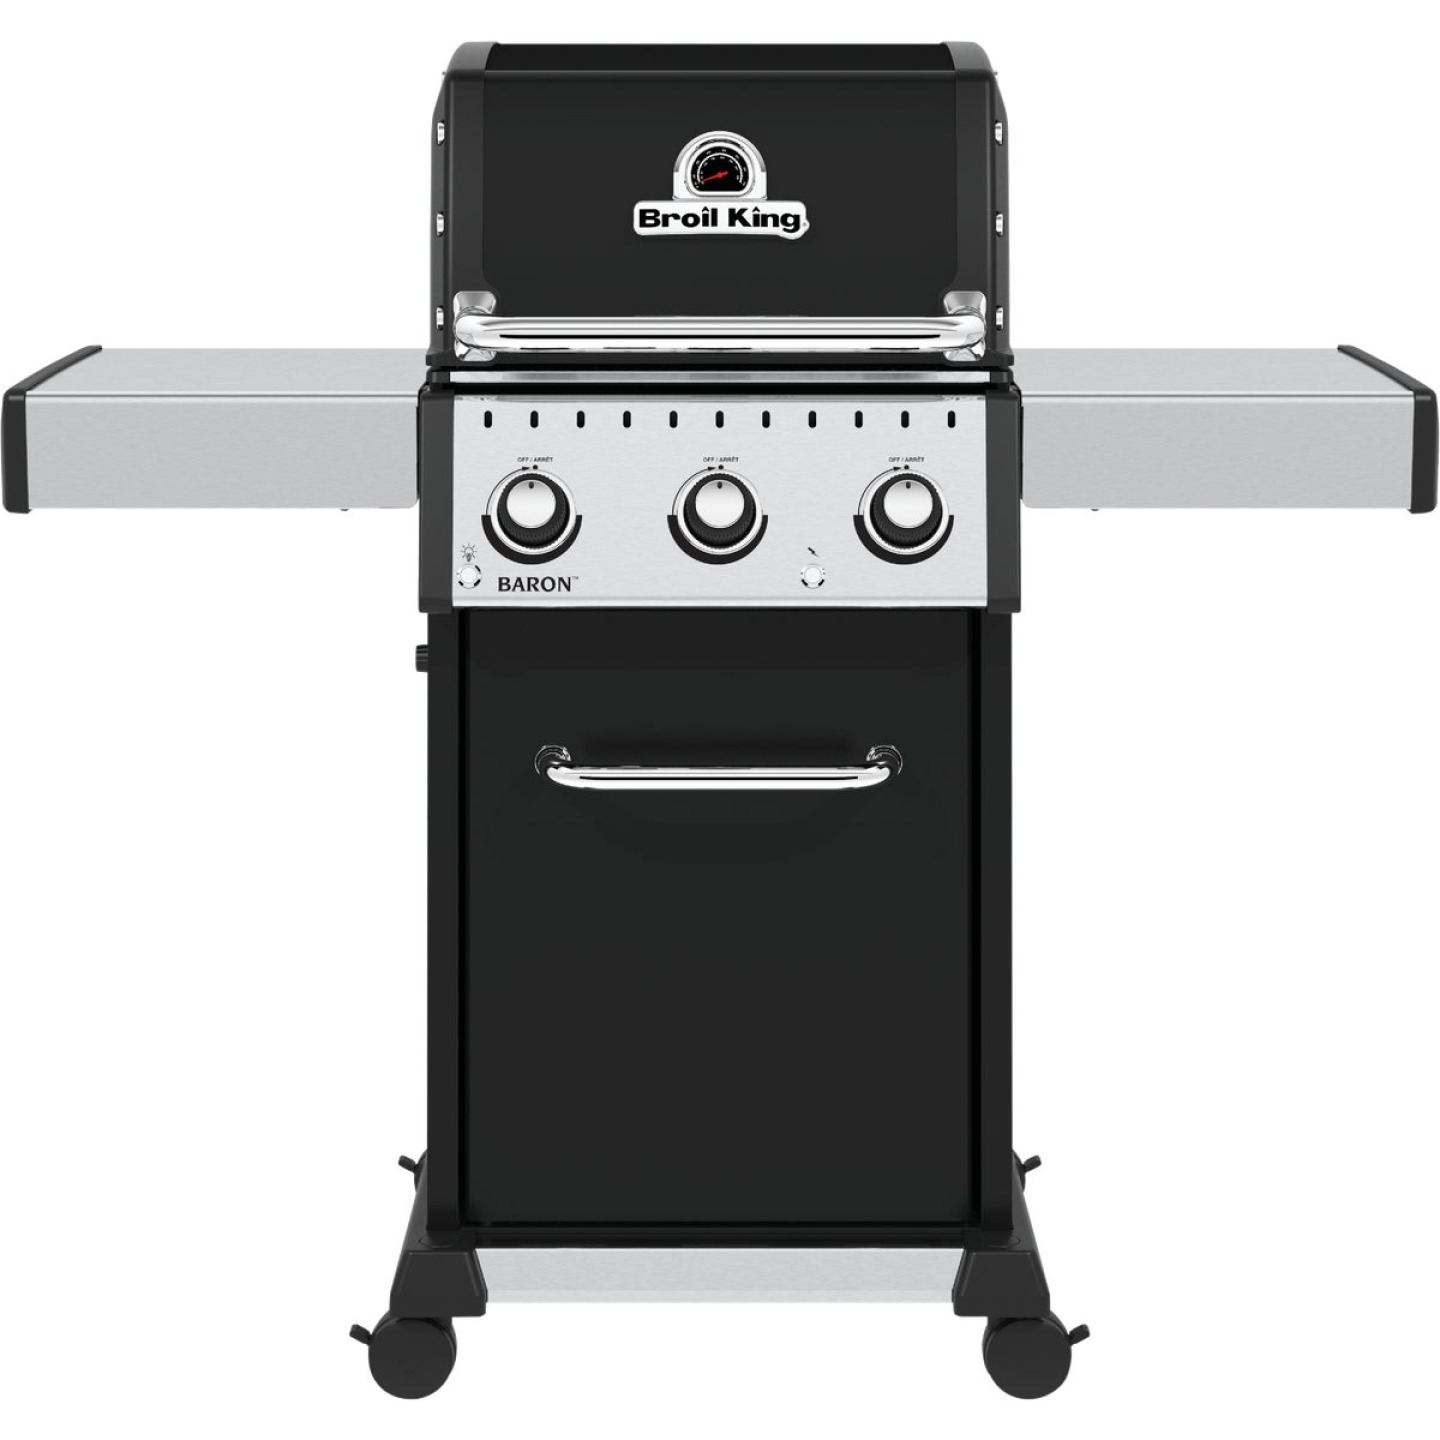 Broil King Baron 320 Pro 3-Burner Black 32,000 BTU LP Gas Grill Image 1